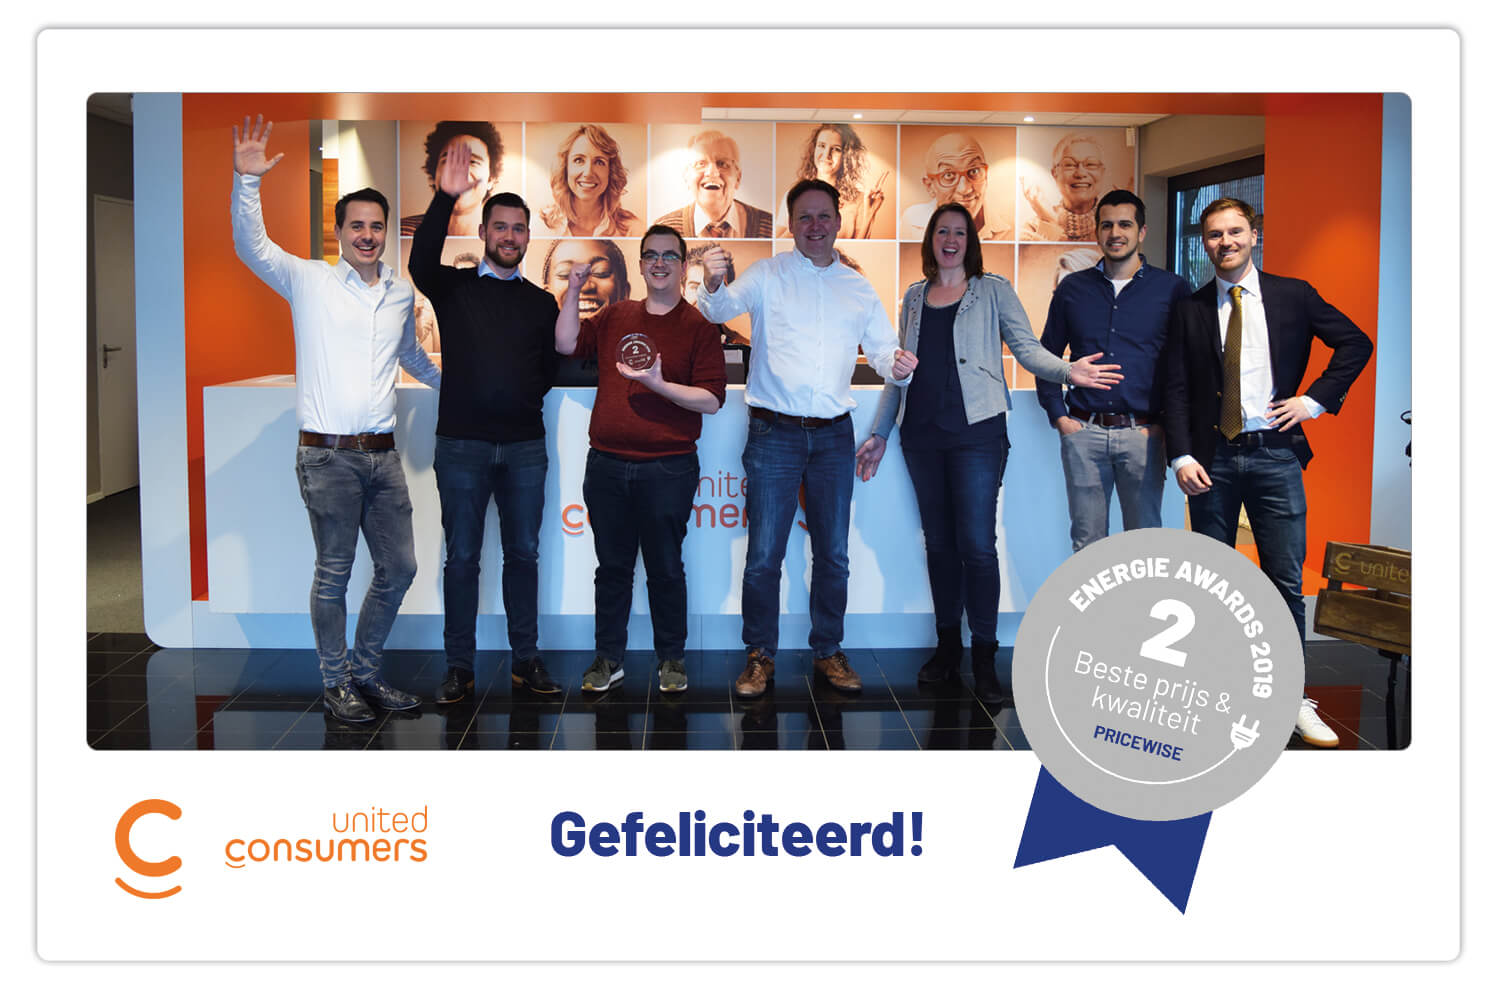 Energie-awards-2019-UnitedConsumers